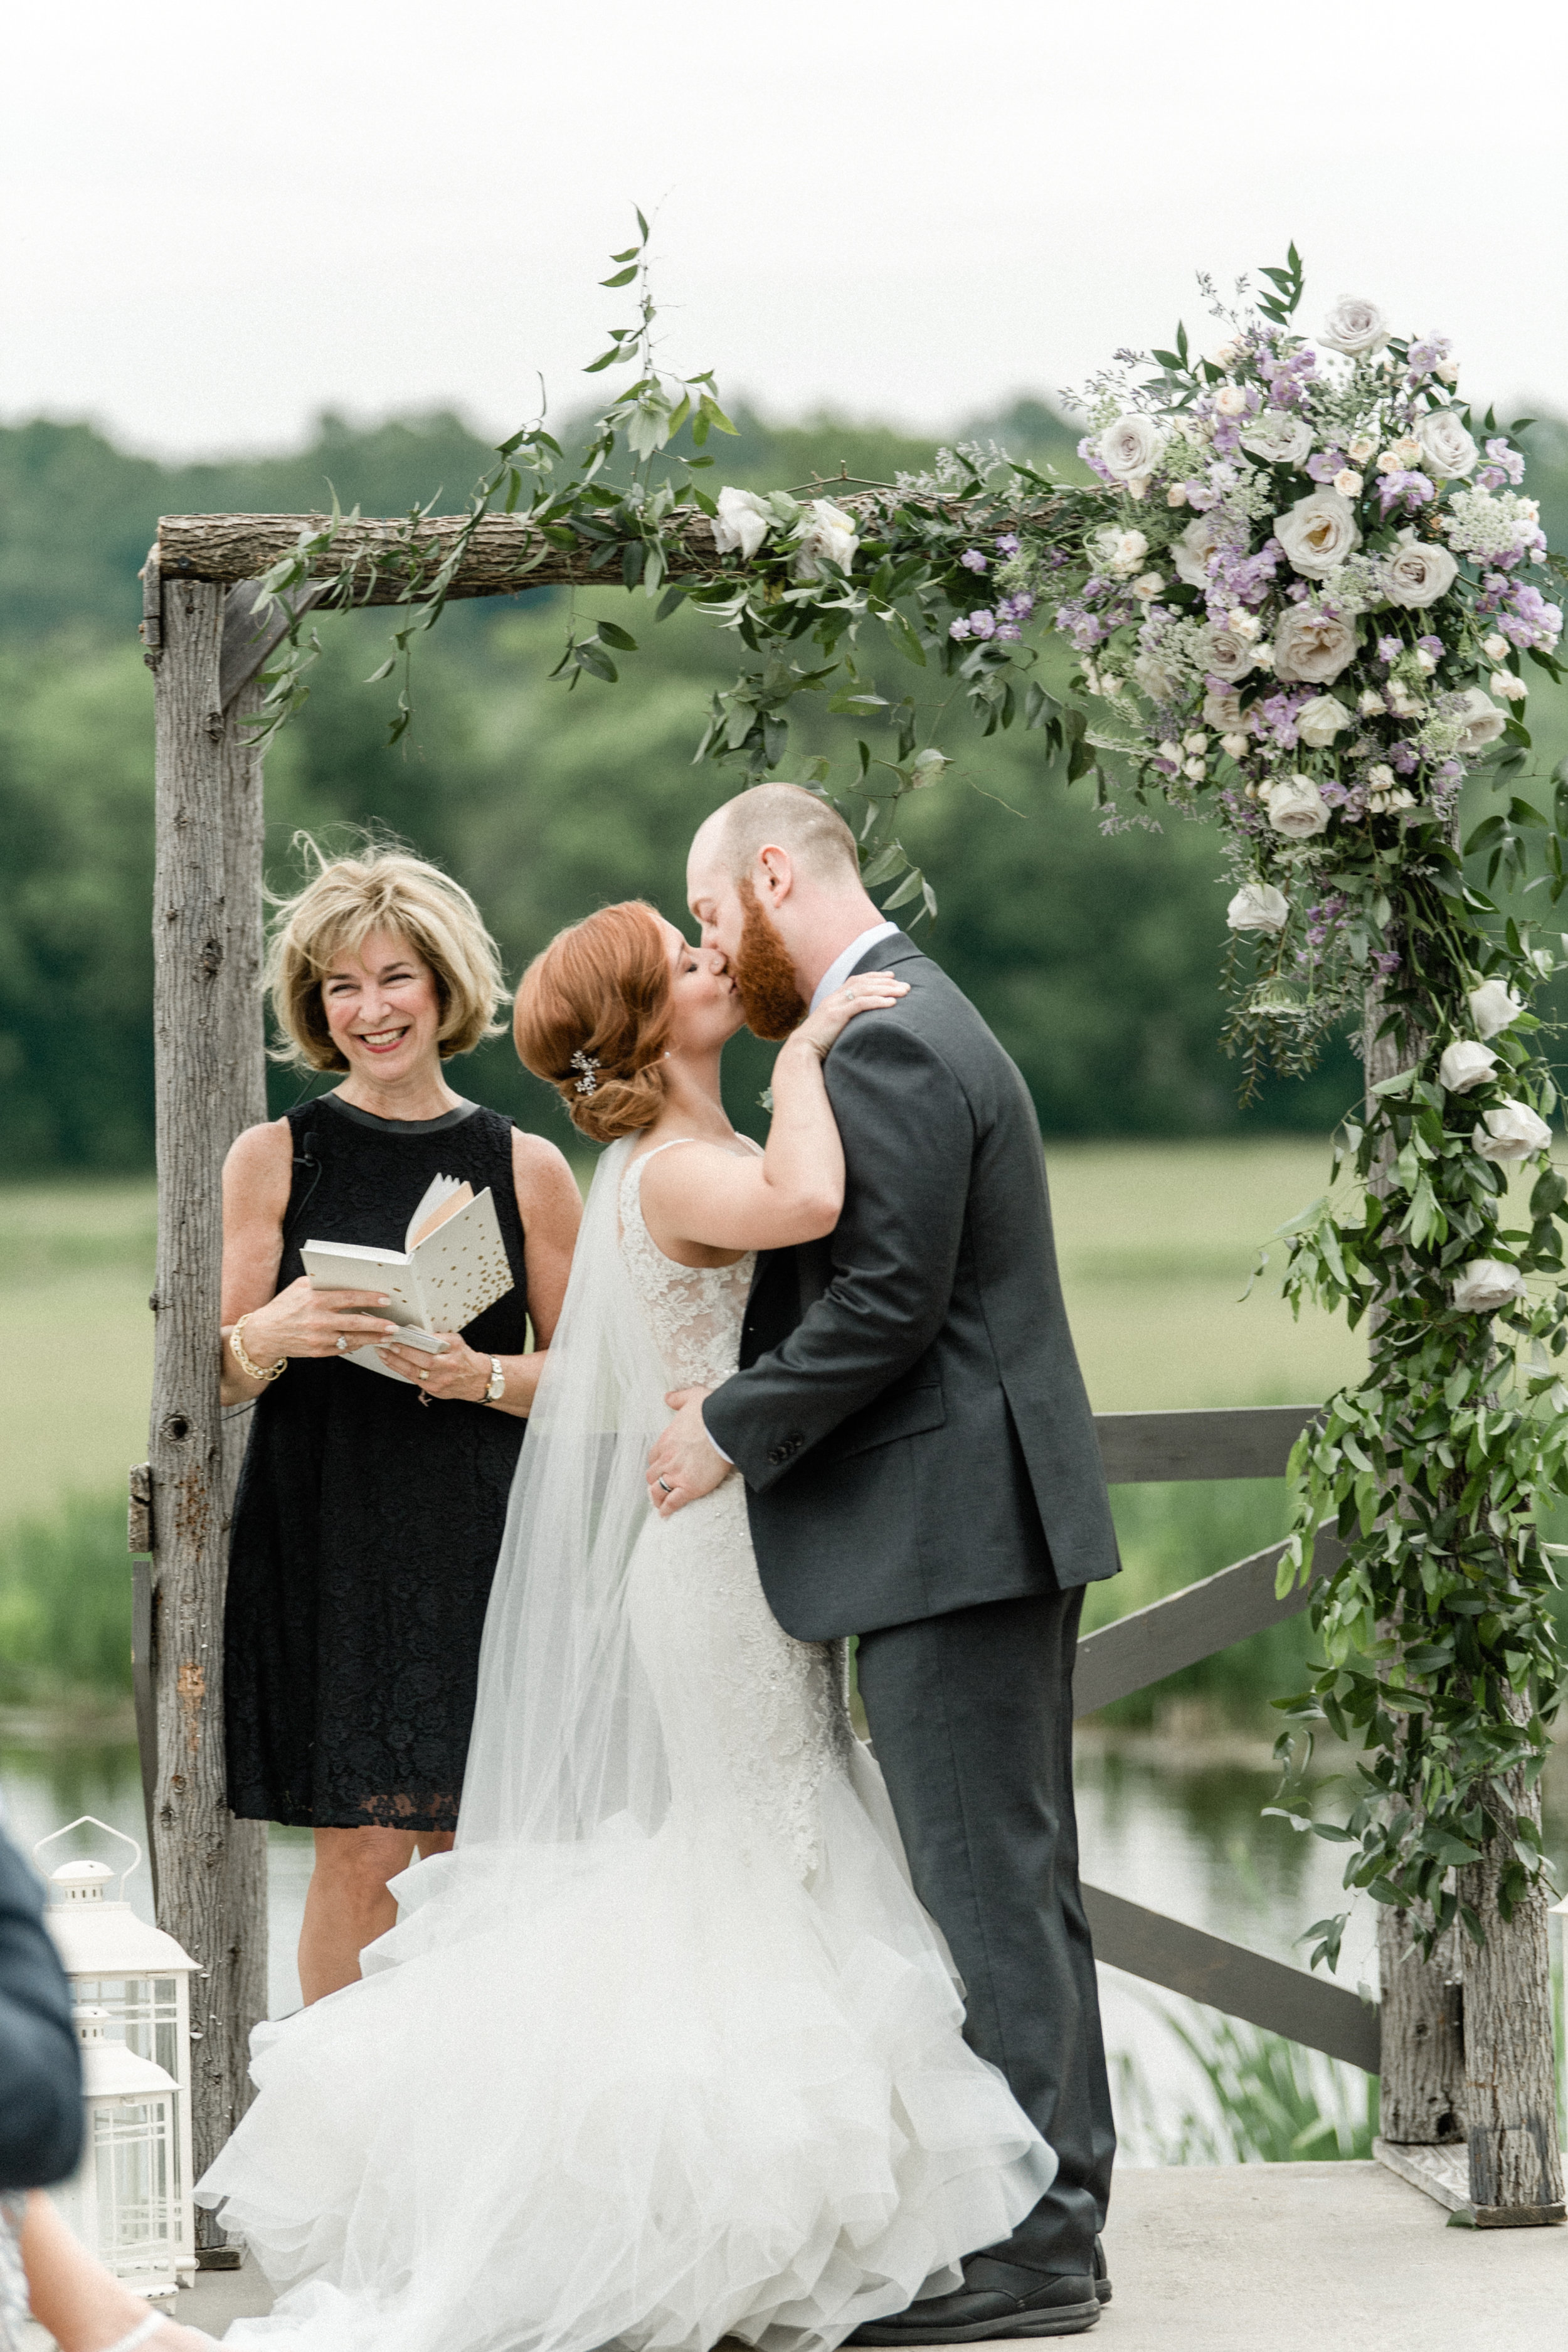 """Mr. & Mrs. - Jackie & Bryce said """"I do"""" under this unique arch! The wood elements mixed with the asymmetrically placed flowers turned out stunning!"""